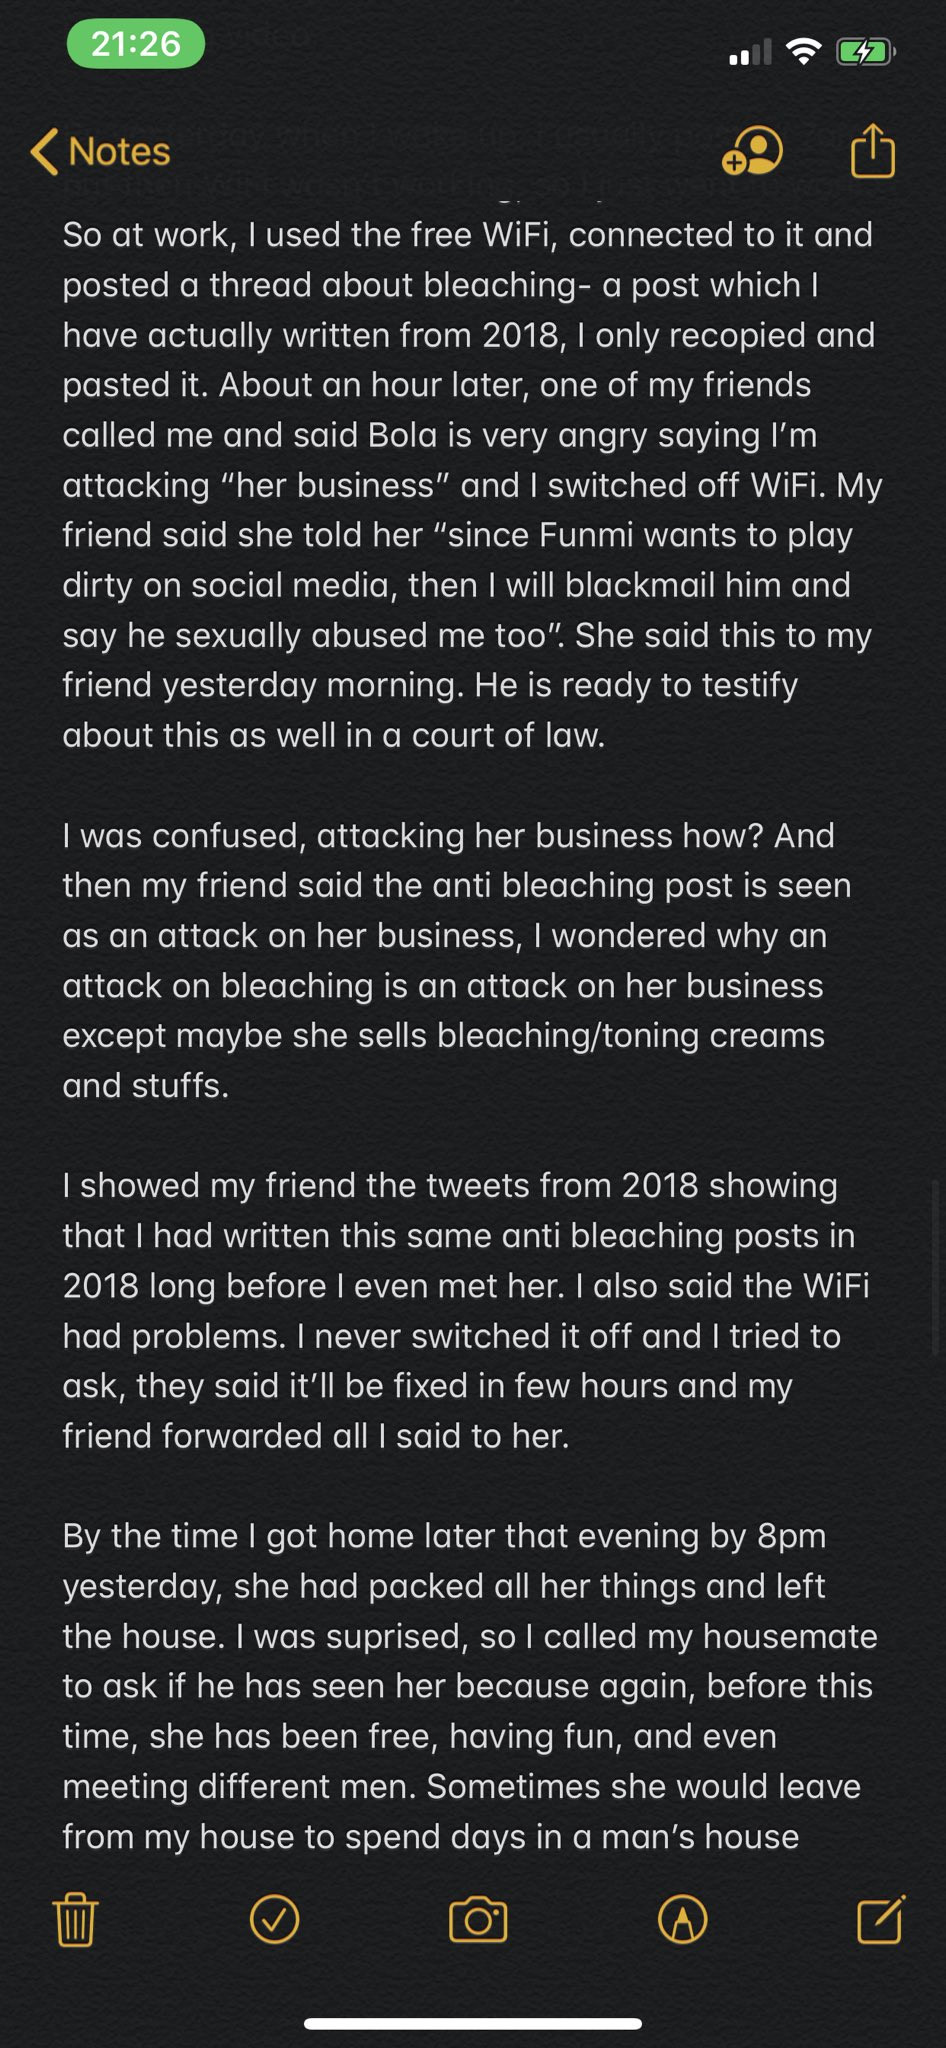 She threatened to blackmail me after traveling from Nigeria to UK to see me - Popular Nigerian doctor and Twitter influencer reacts to sexual abuse allegation lindaikejisblog 9